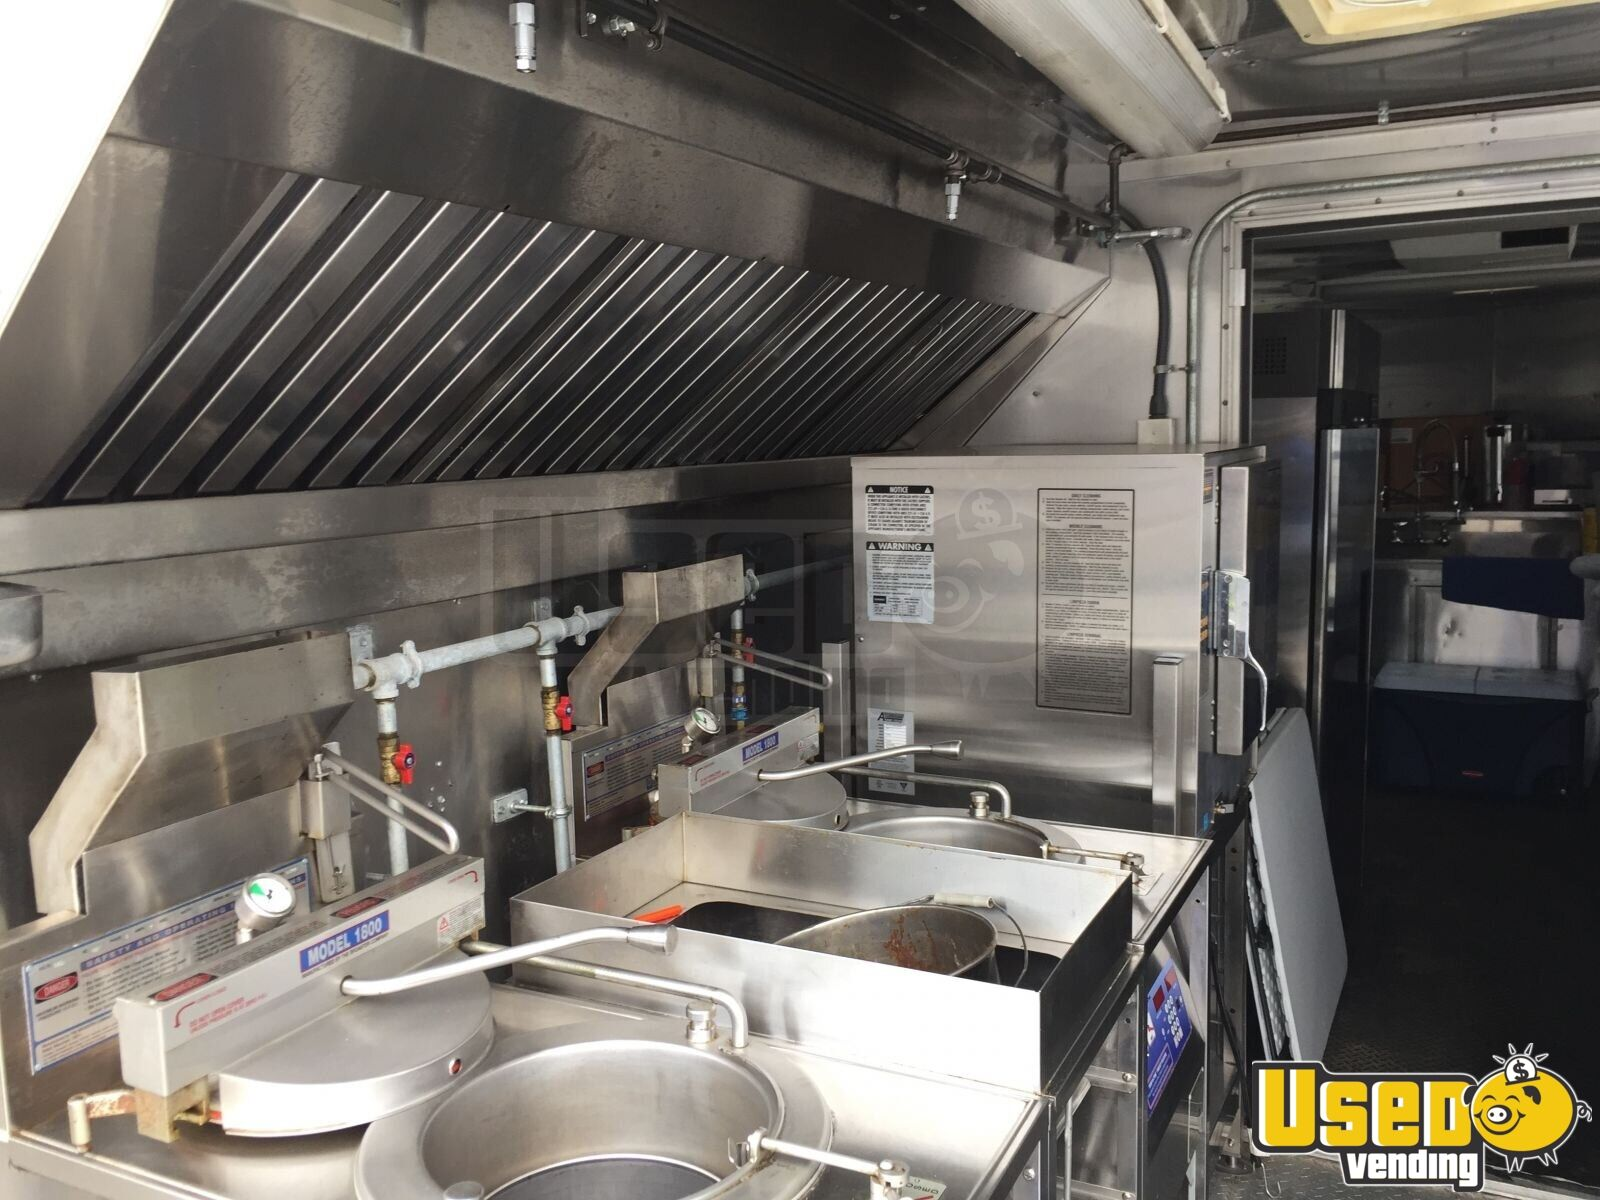 2012 Food Concession Trailer Kitchen Food Trailer Generator Pennsylvania for Sale - 7